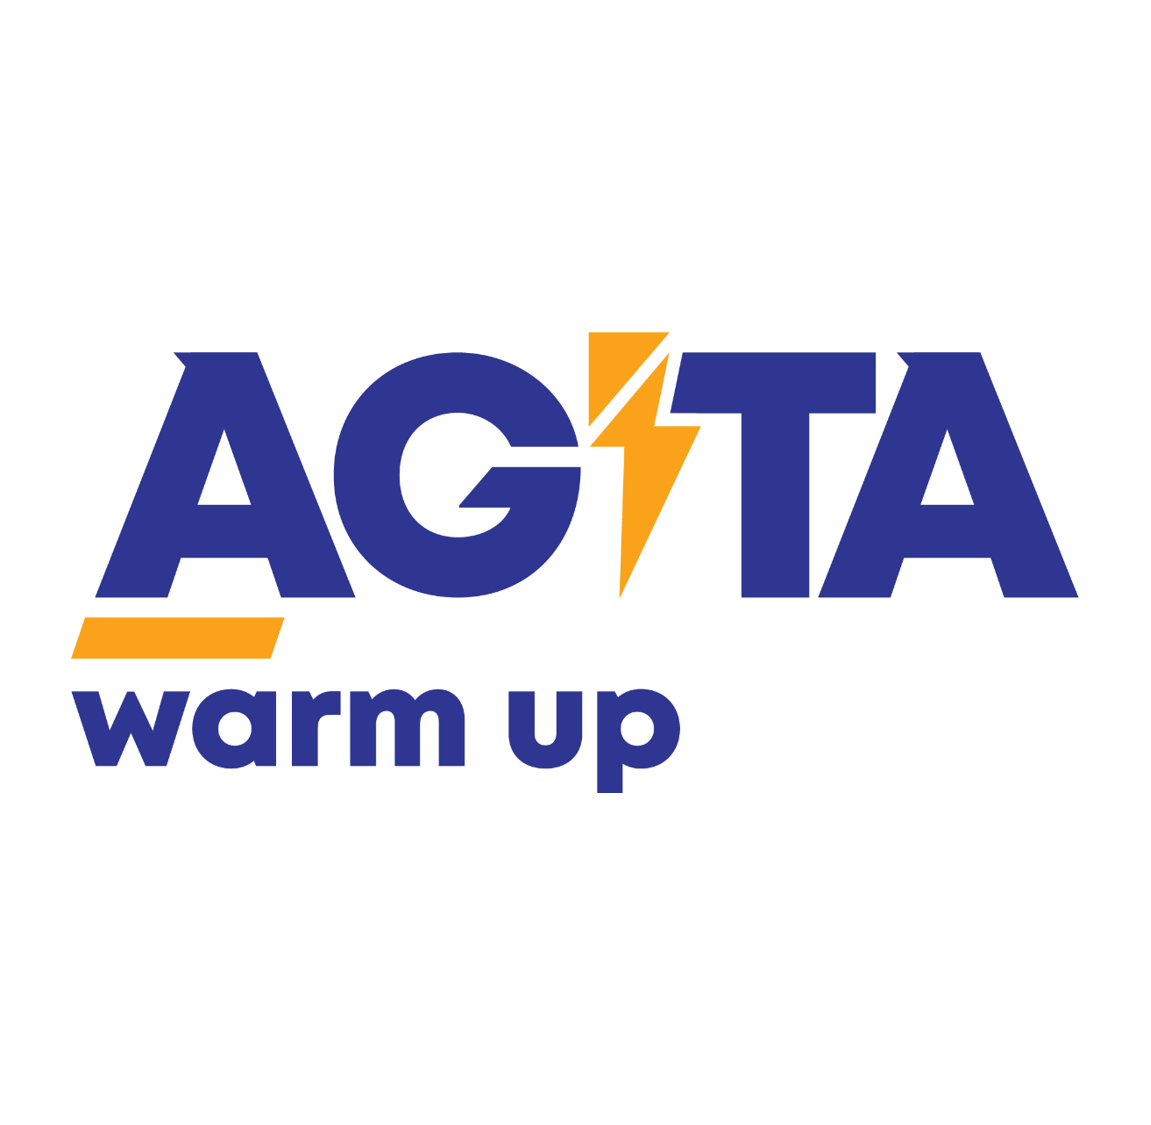 AGITA WARM UP 100% ONLINE – PARÁ DE MINAS